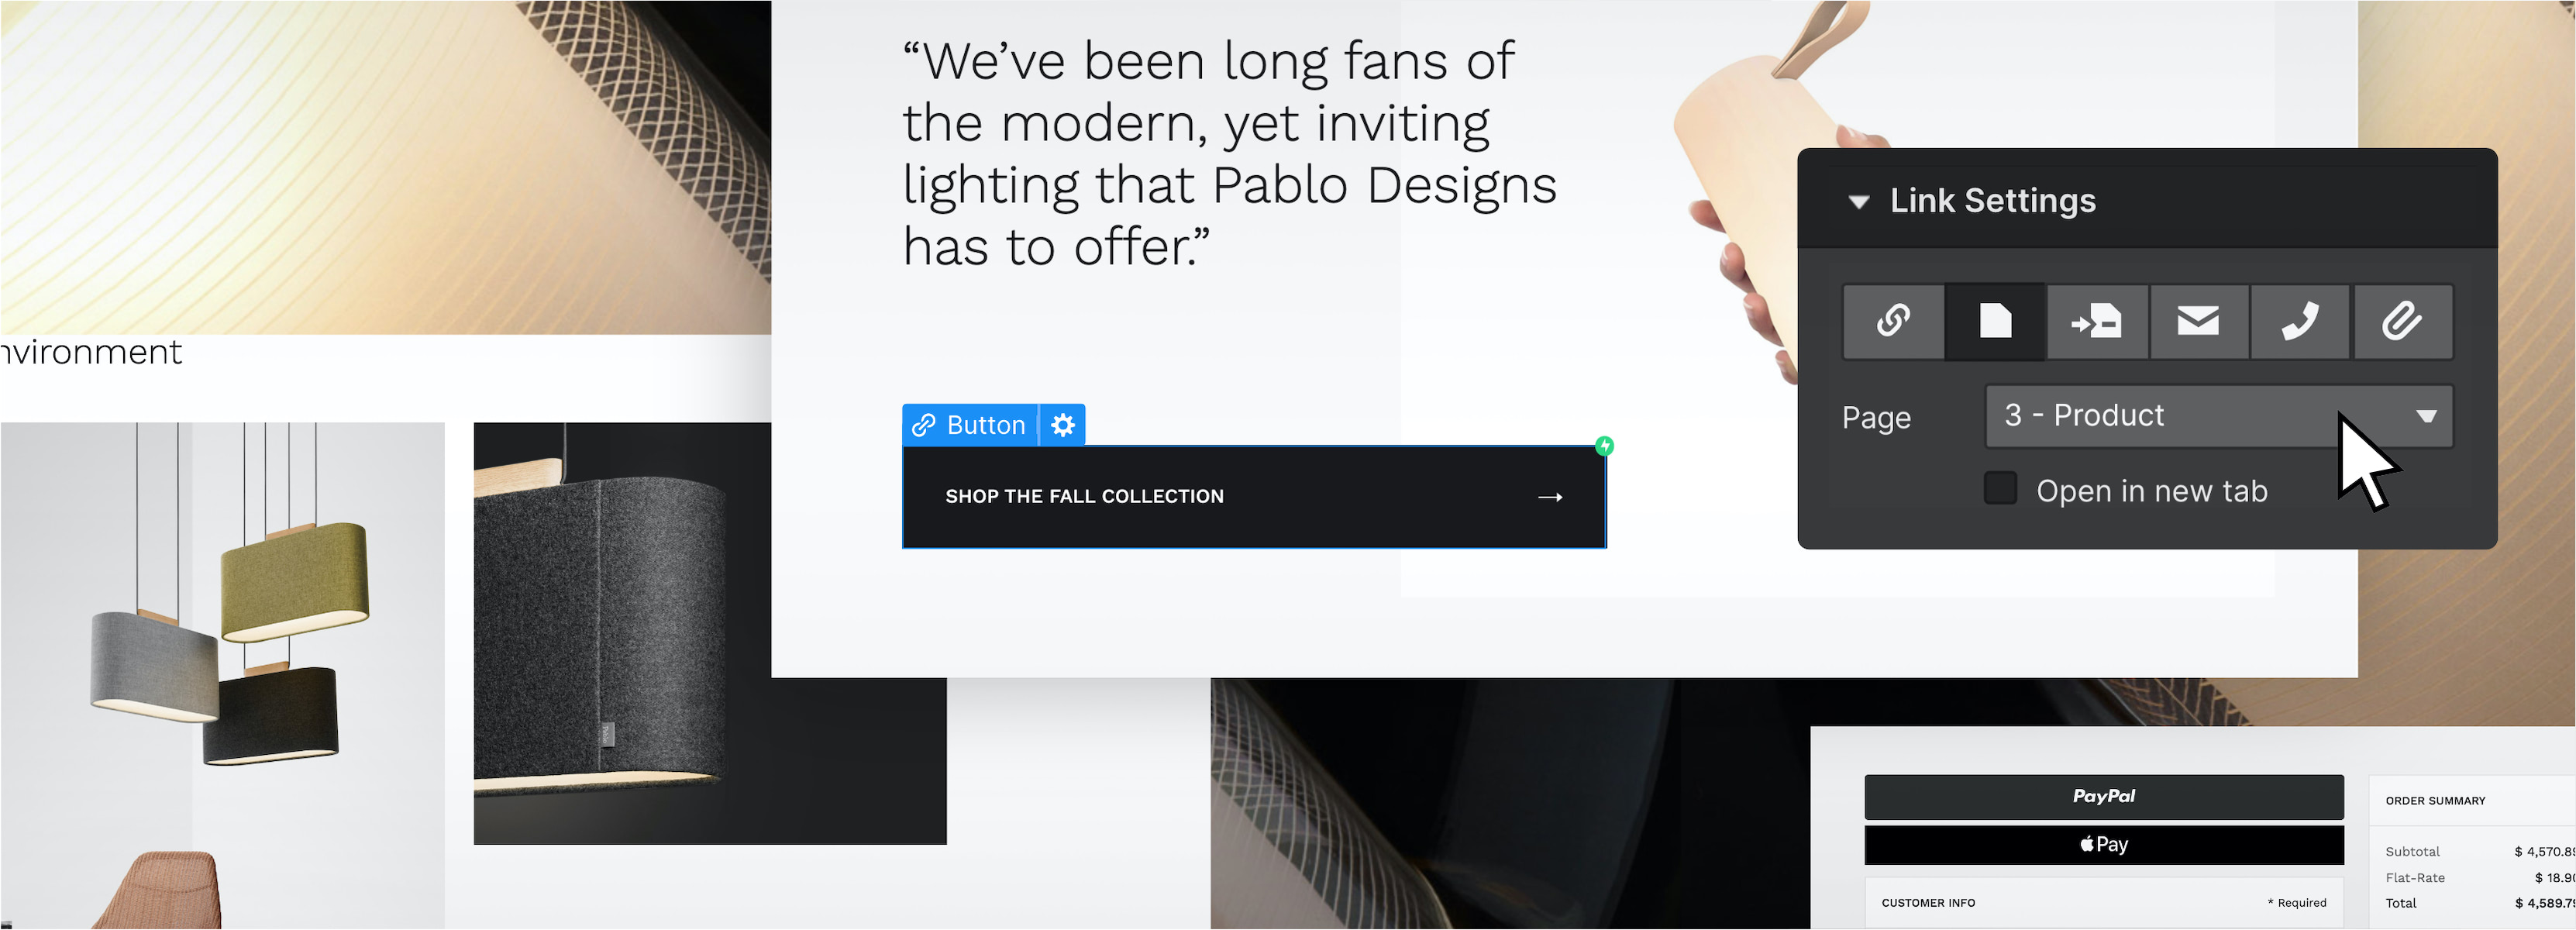 The link settings panel of the Webflow Designer UI shows that a link is opening a new page of a website. In the background, a button is highlighted on a website.